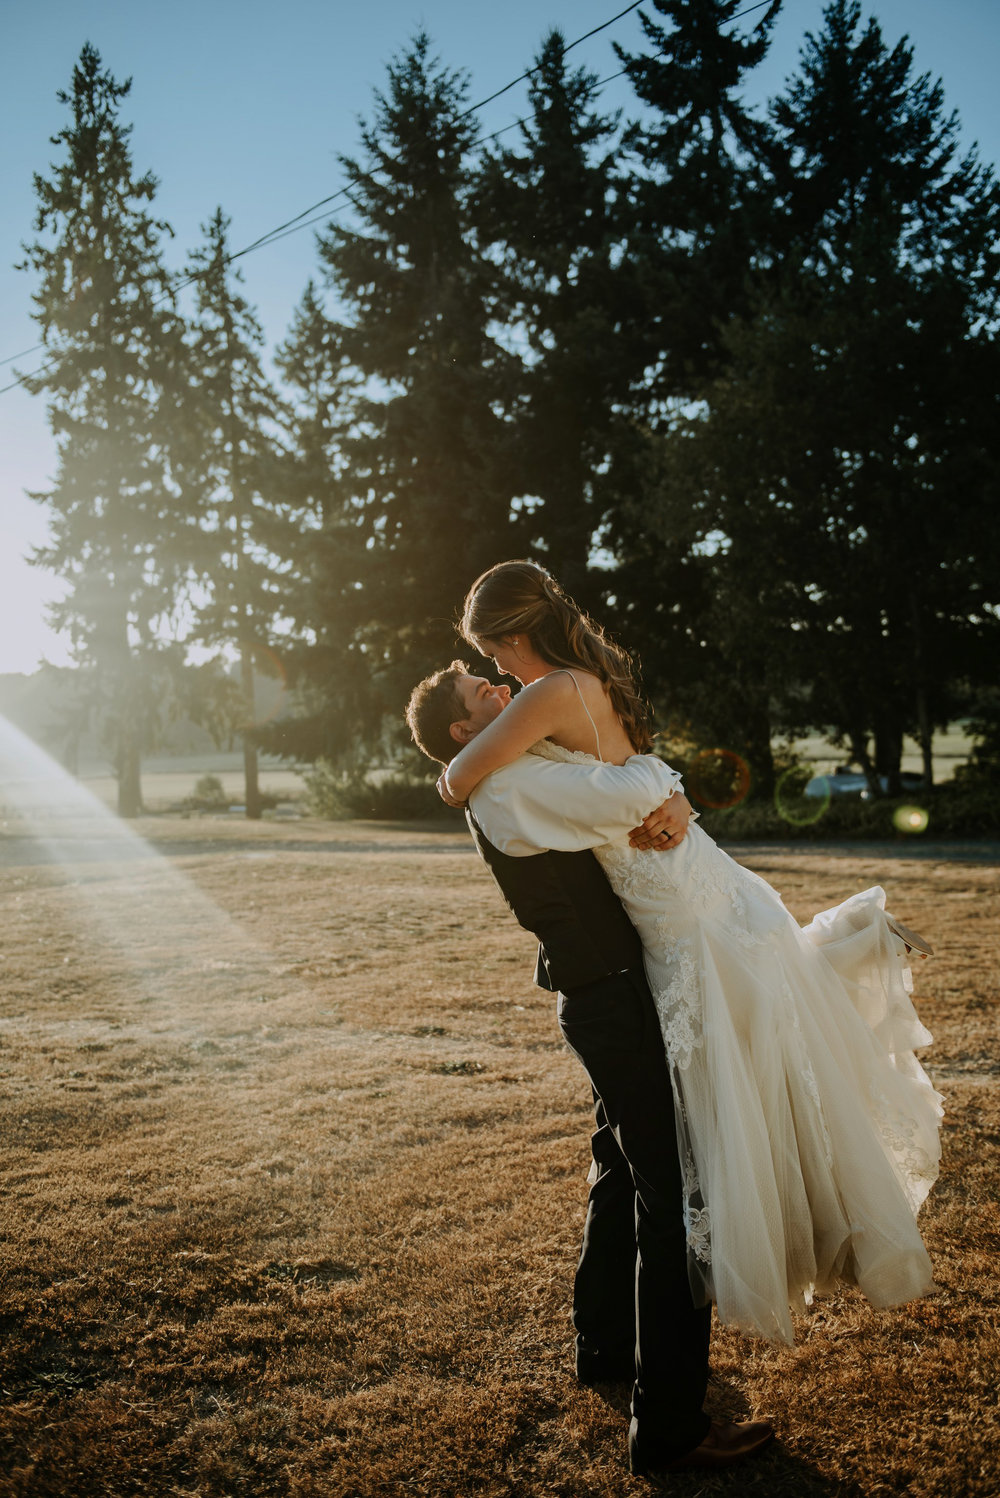 kristen-and-cody-the-kelley-farm-wedding-seattle-photographer-caitlyn-nikula-93.jpg